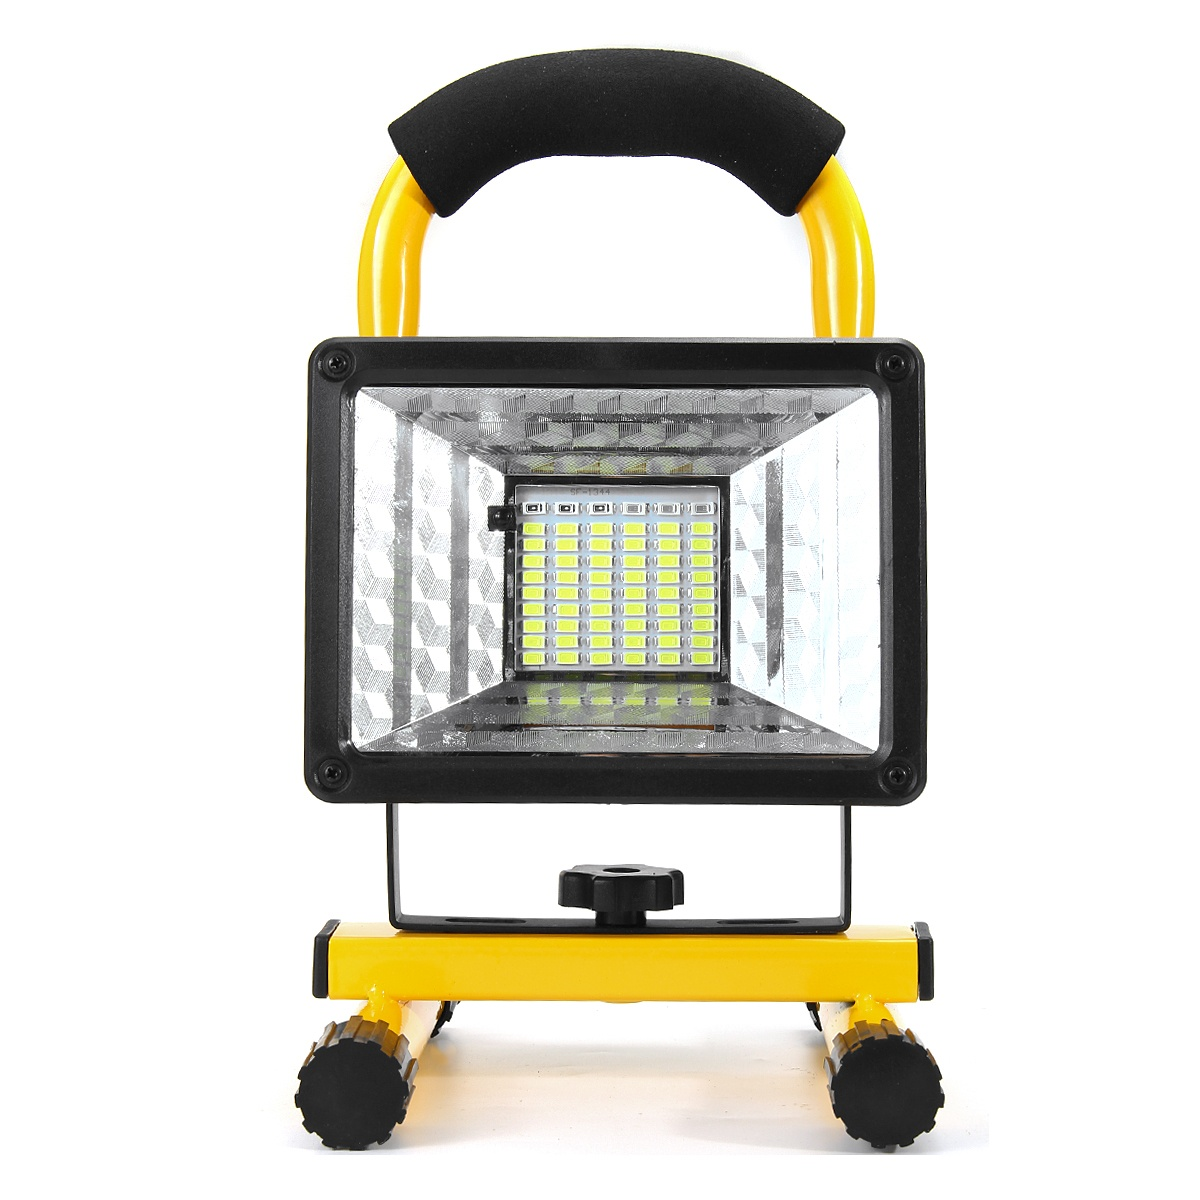 [ With or without Remote Control ] 100/300W 60LED Portable Waterproof Flood Light Outdoor Work Spotlight Camping Fishing Searching Lamp Rechargeable Car Emergency Light